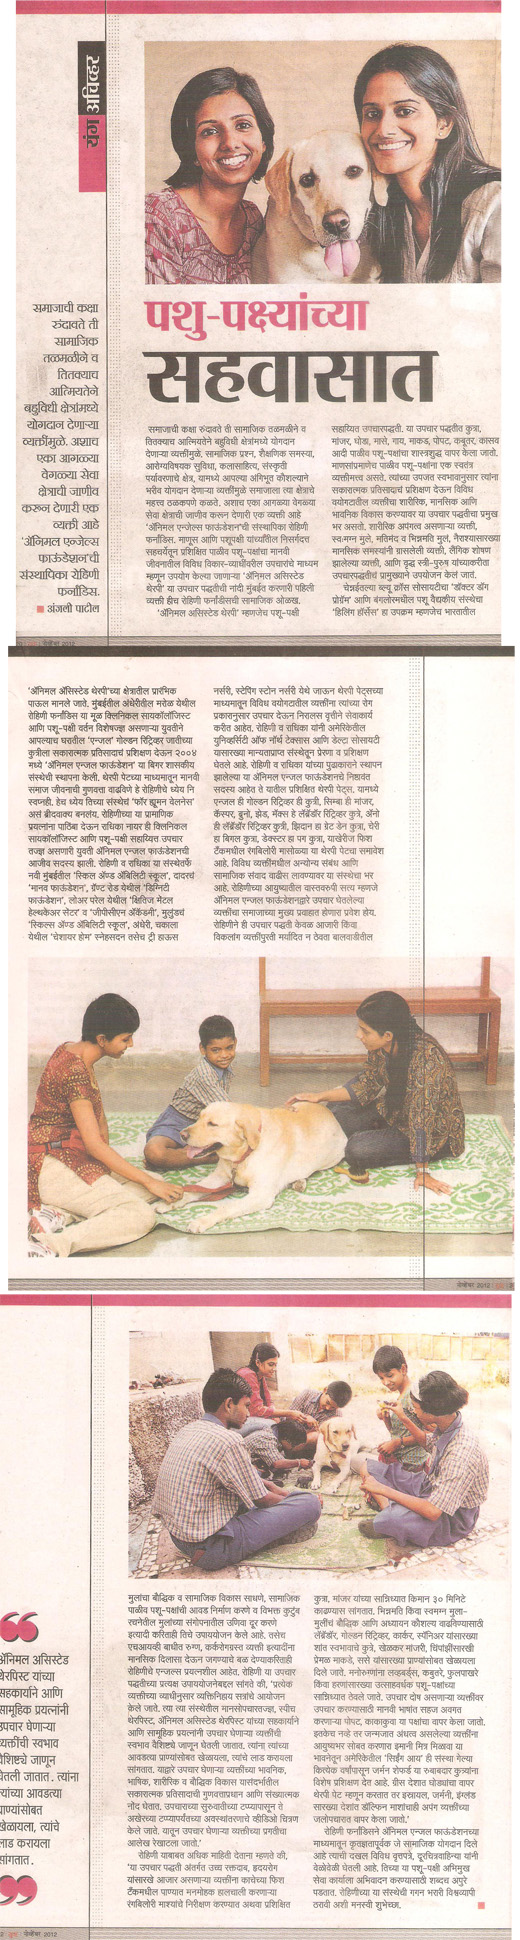 Yuva marathi magazine article on Animal Angels Foundation - November 2012